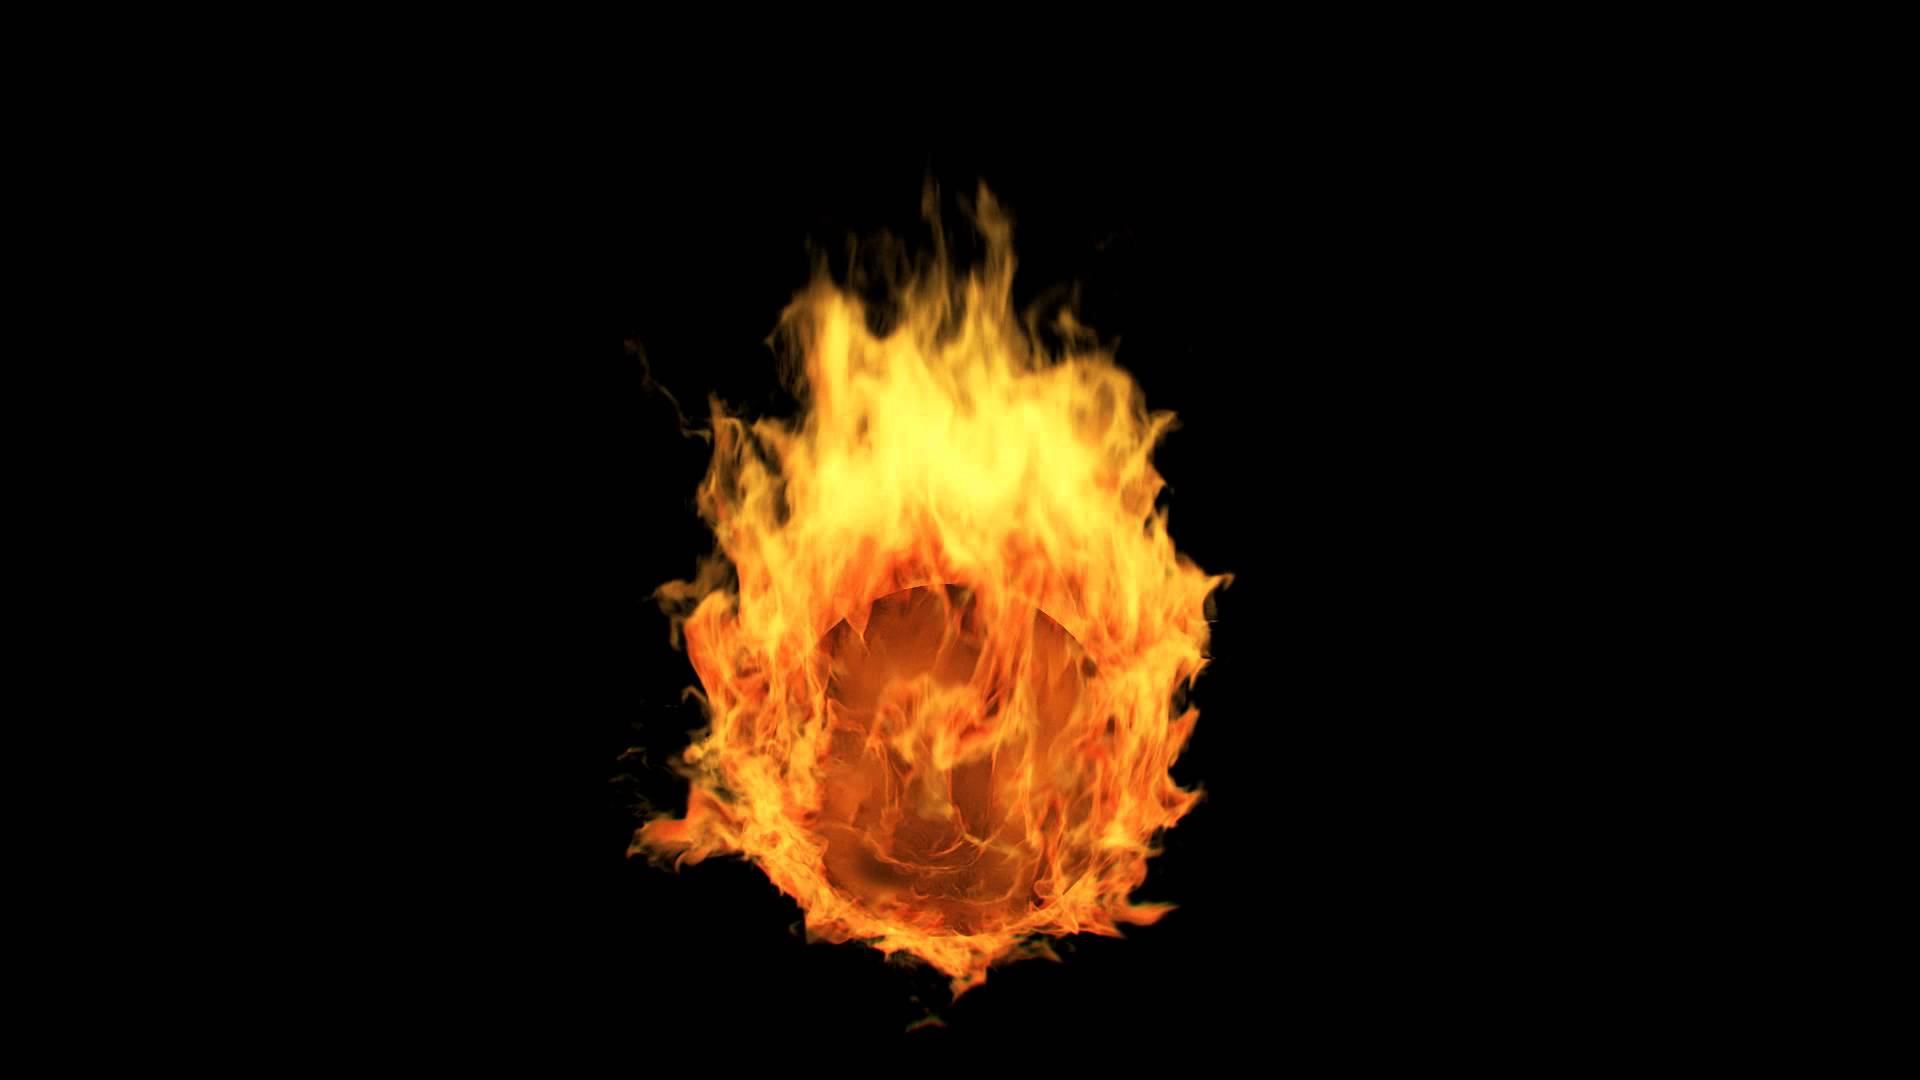 Fire Ball Wallpapers Wallpaper Cave